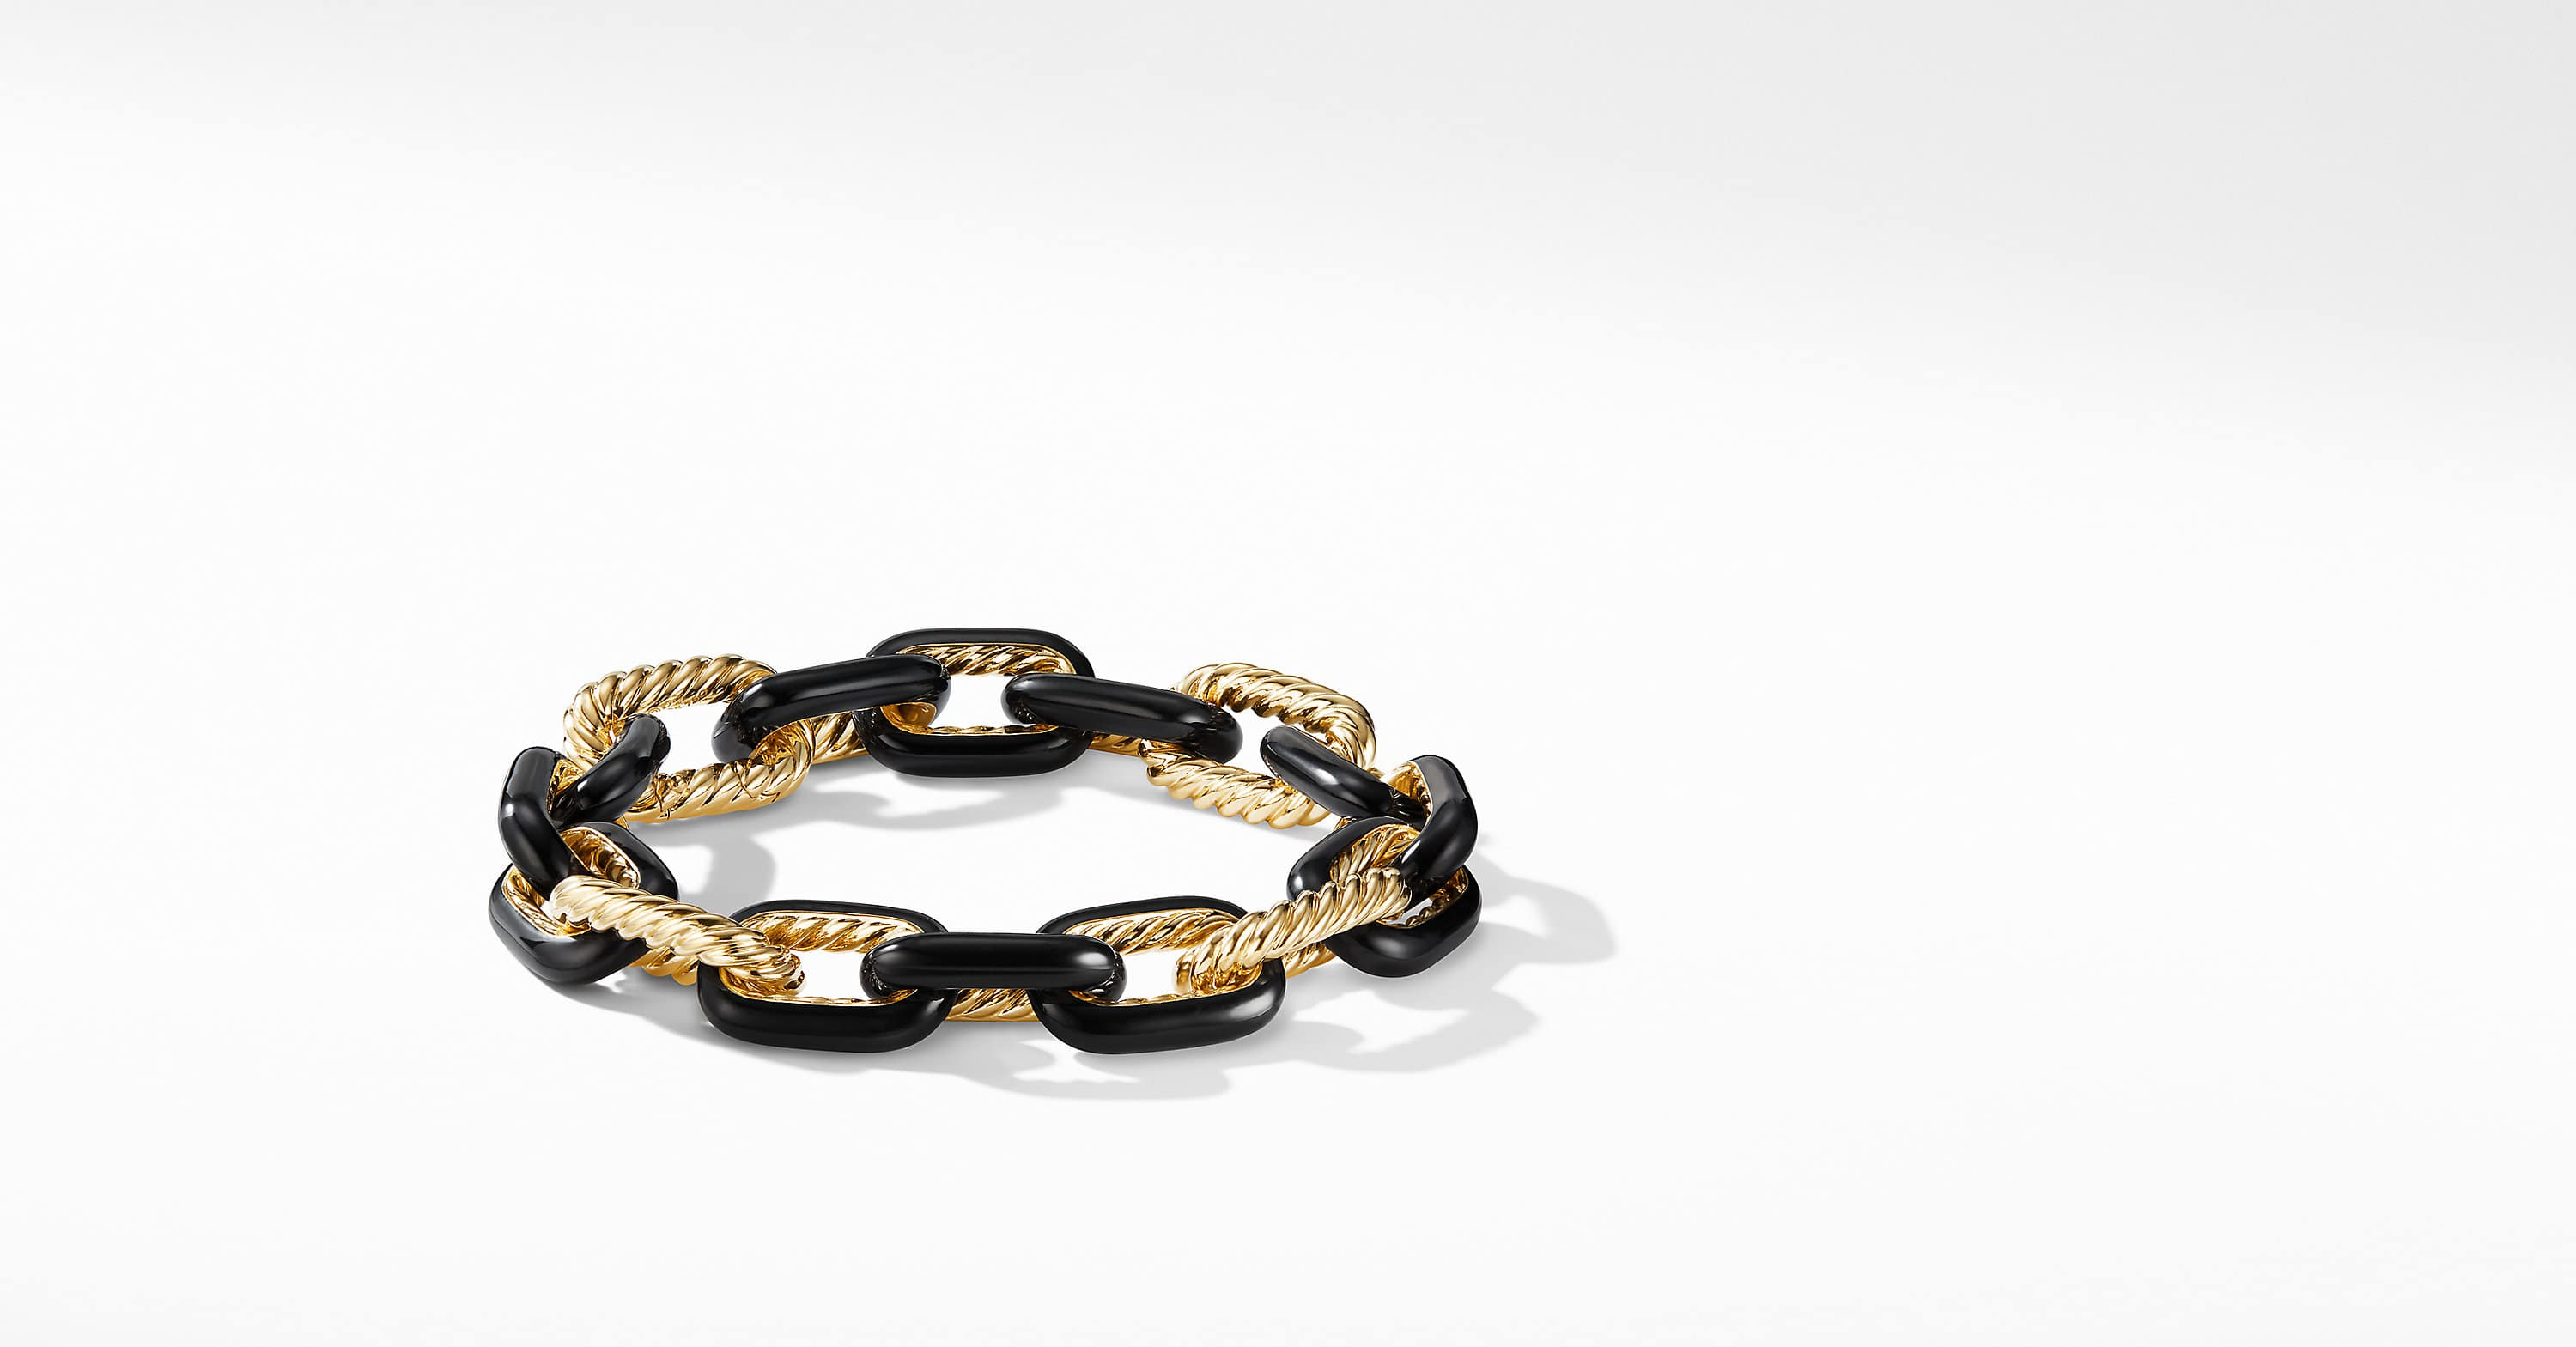 DY Madison Chain Bracelet in 18K Gold, 12.5mm